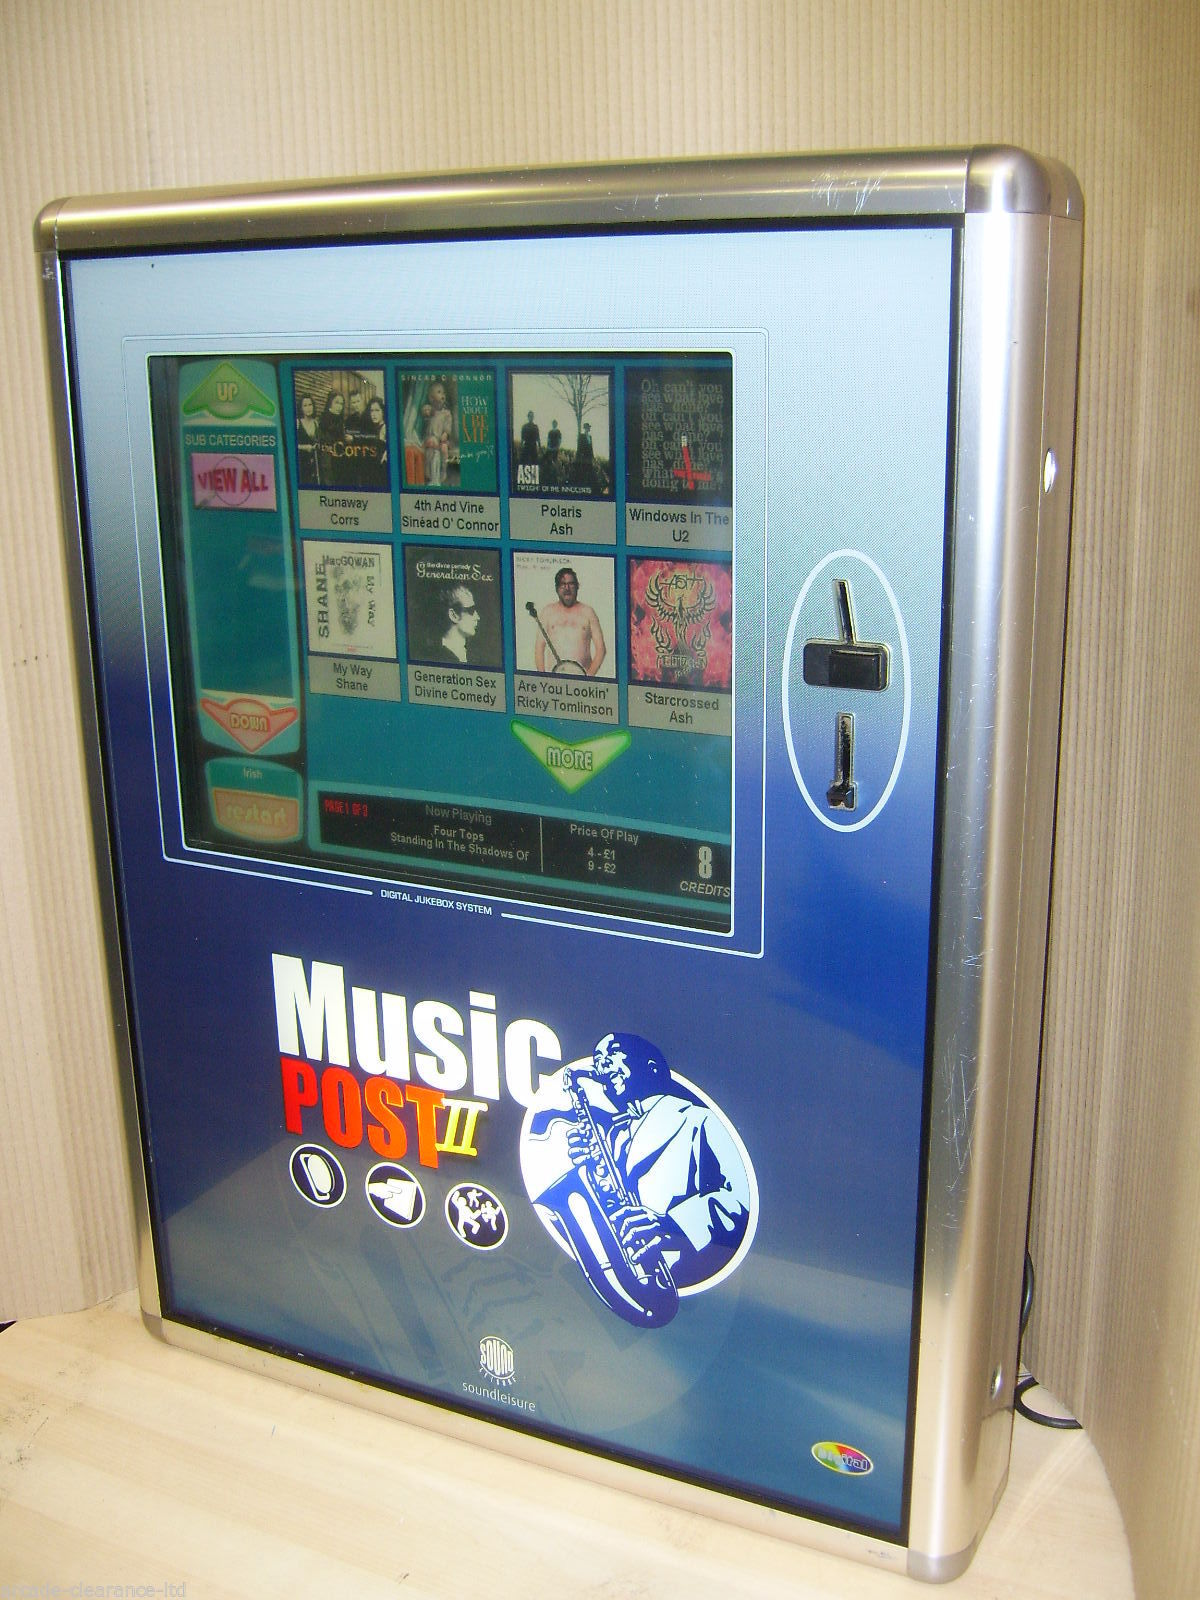 Music Post 2 Digital Jukebox Rps 5000 Commercial Use